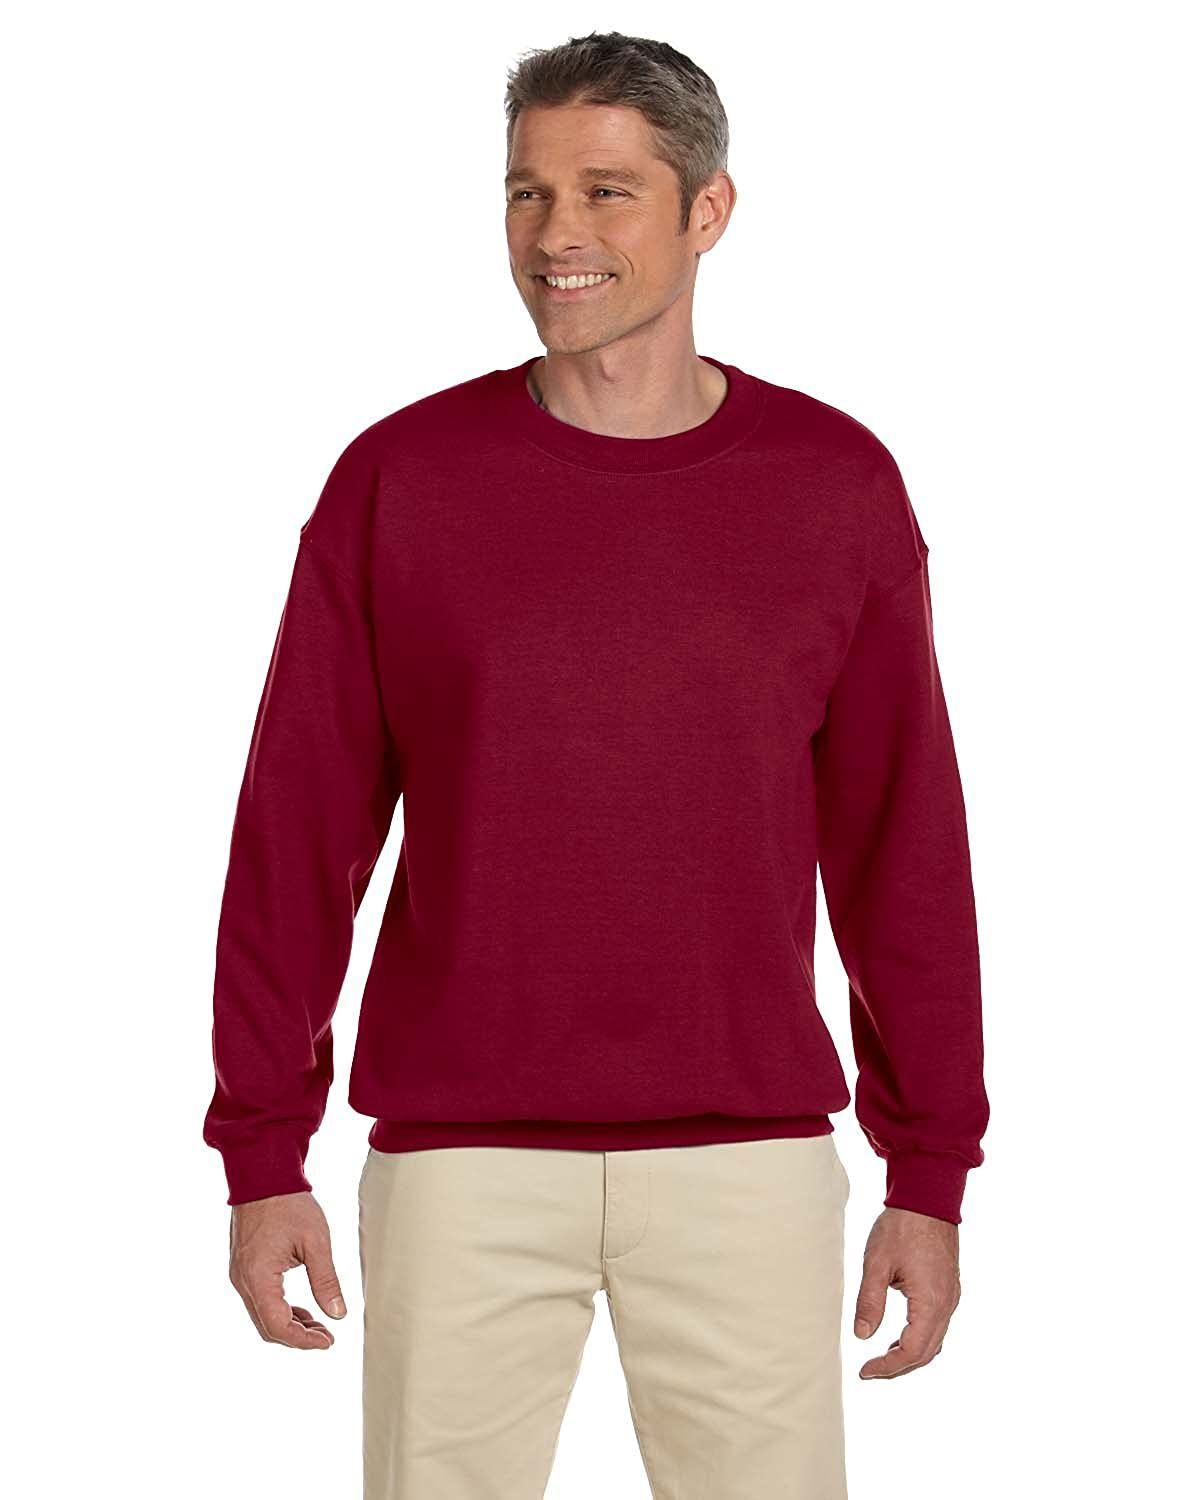 G180 Gildan Mens 8 oz Heavy Blend 50//50 Fleece Crew 5XL-12PK -Antique CH